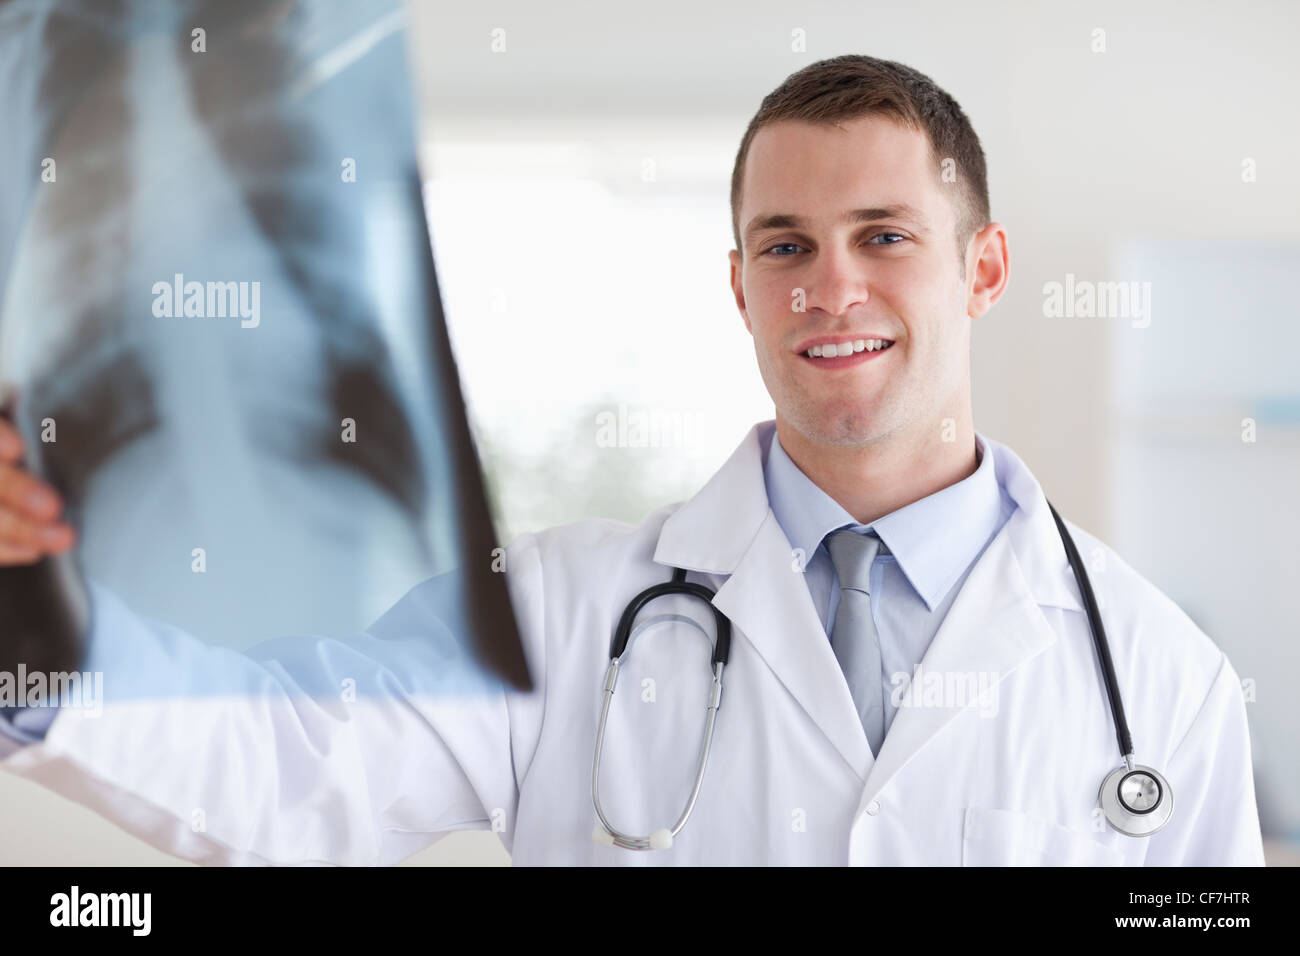 Smiling young doctor looking at x-ray Photo Stock